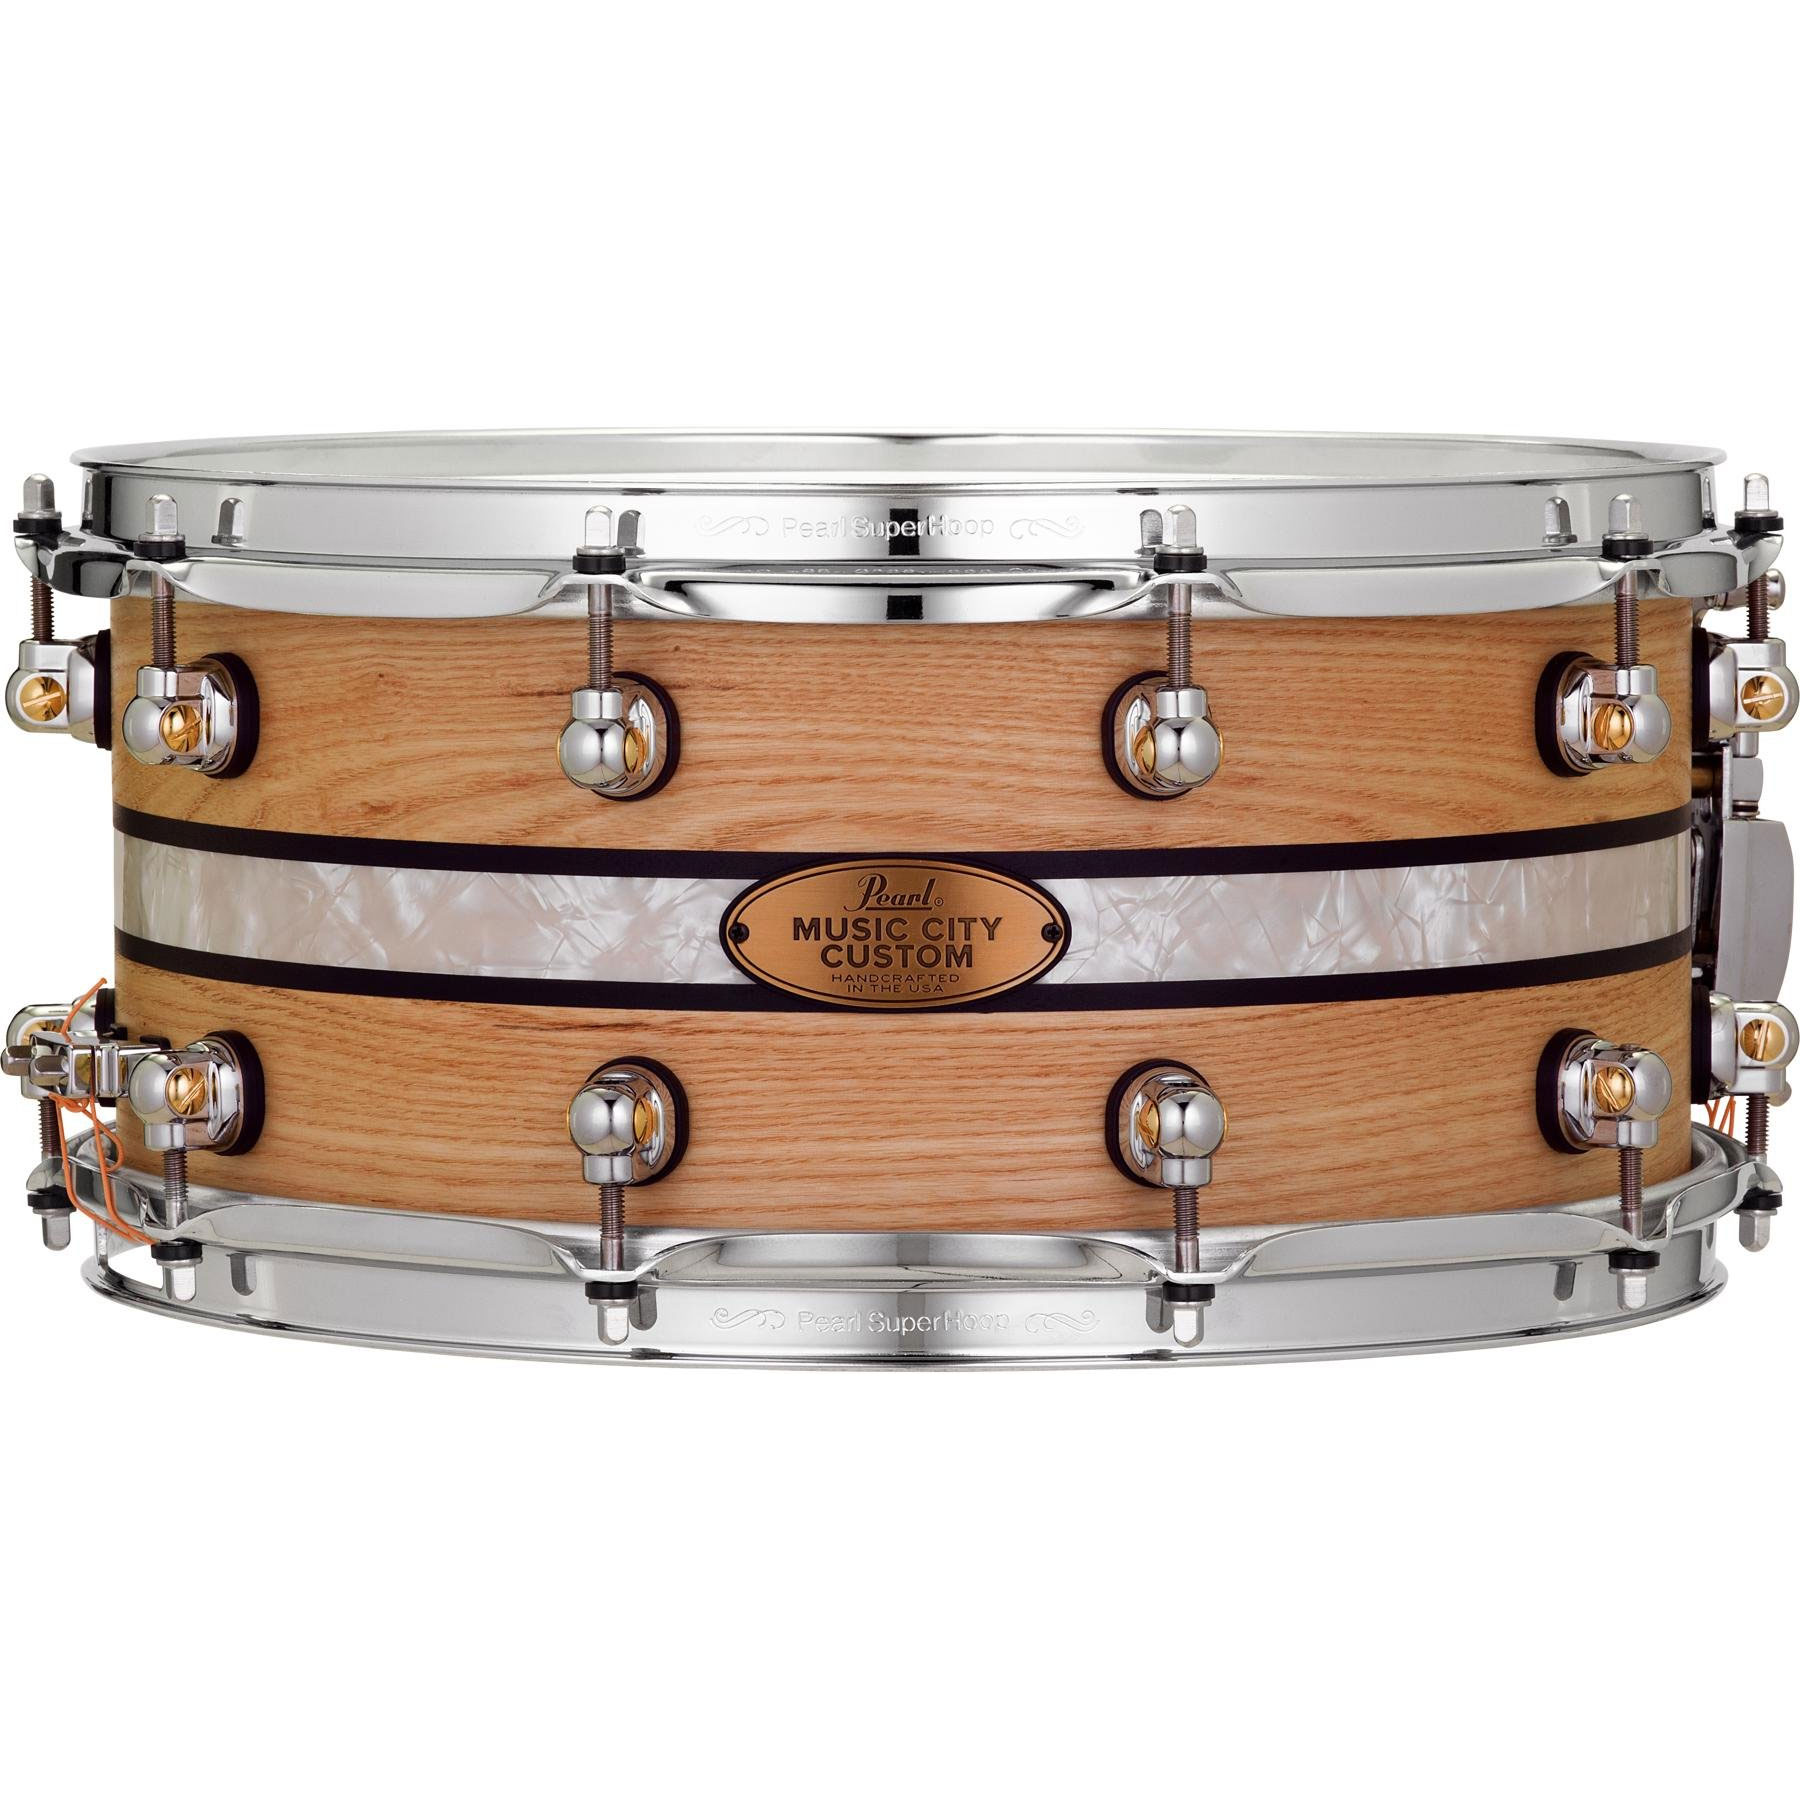 "Pearl 14"" x 6.5"" Music City Custom Solid Ash Snare Drum with DuoBand Ebony Marine Inlay"